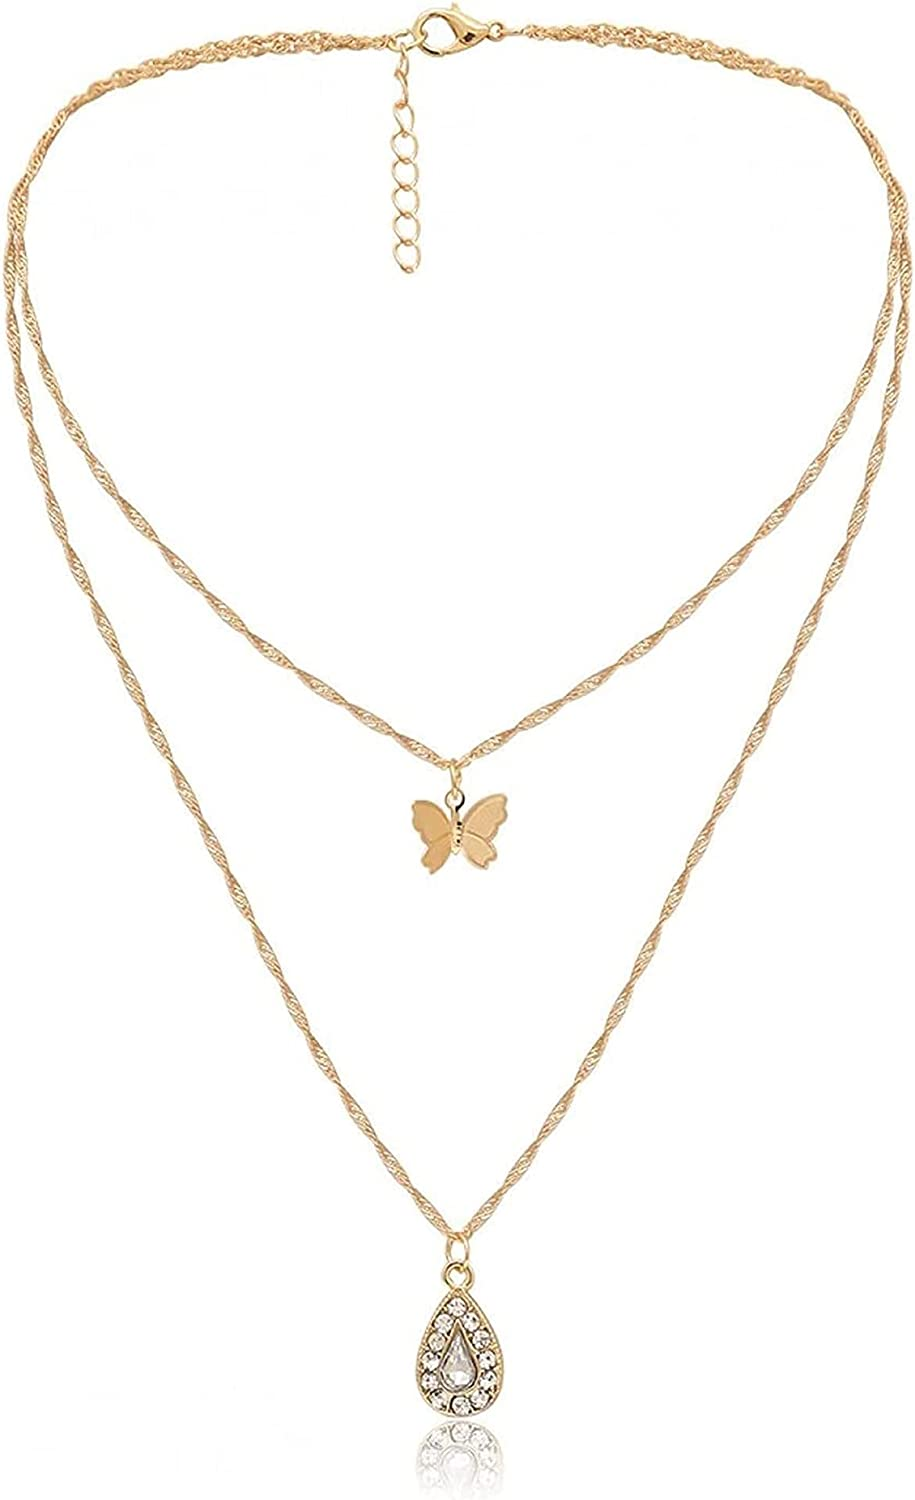 JIAW Necklaces Necklace Ins European and American Butterfly Three-Dimensional Necklace Female Drop-Shaped Zircon Double-Layer Necklace Birthday Gift Valentine's Day Gift